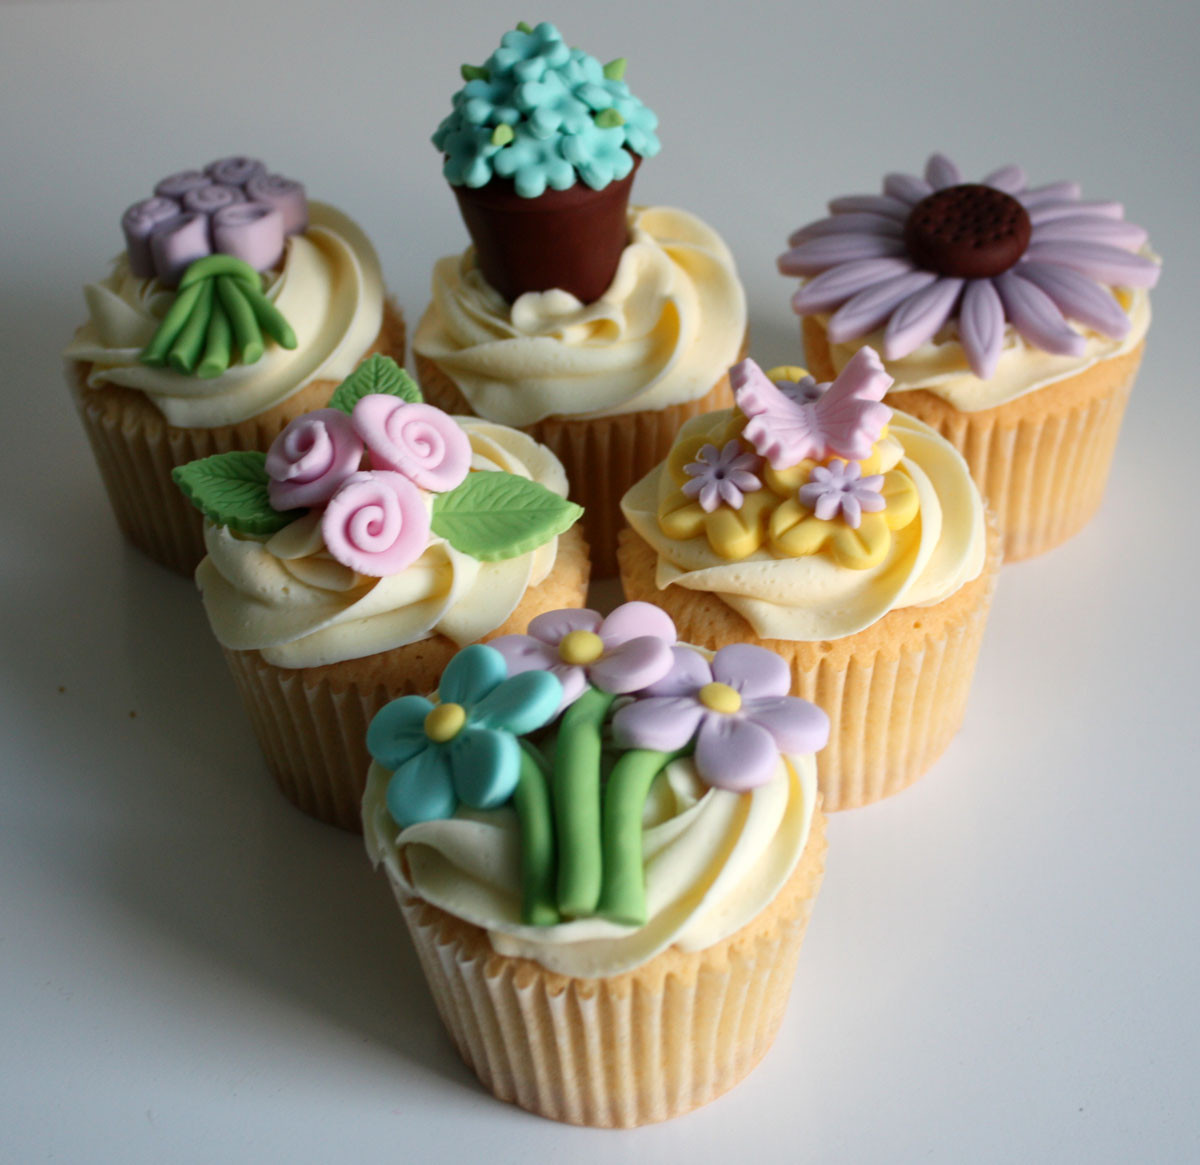 Mothers Day Cupcakes  Mother s Day 2014 Heaven is a Cupcake St Albans